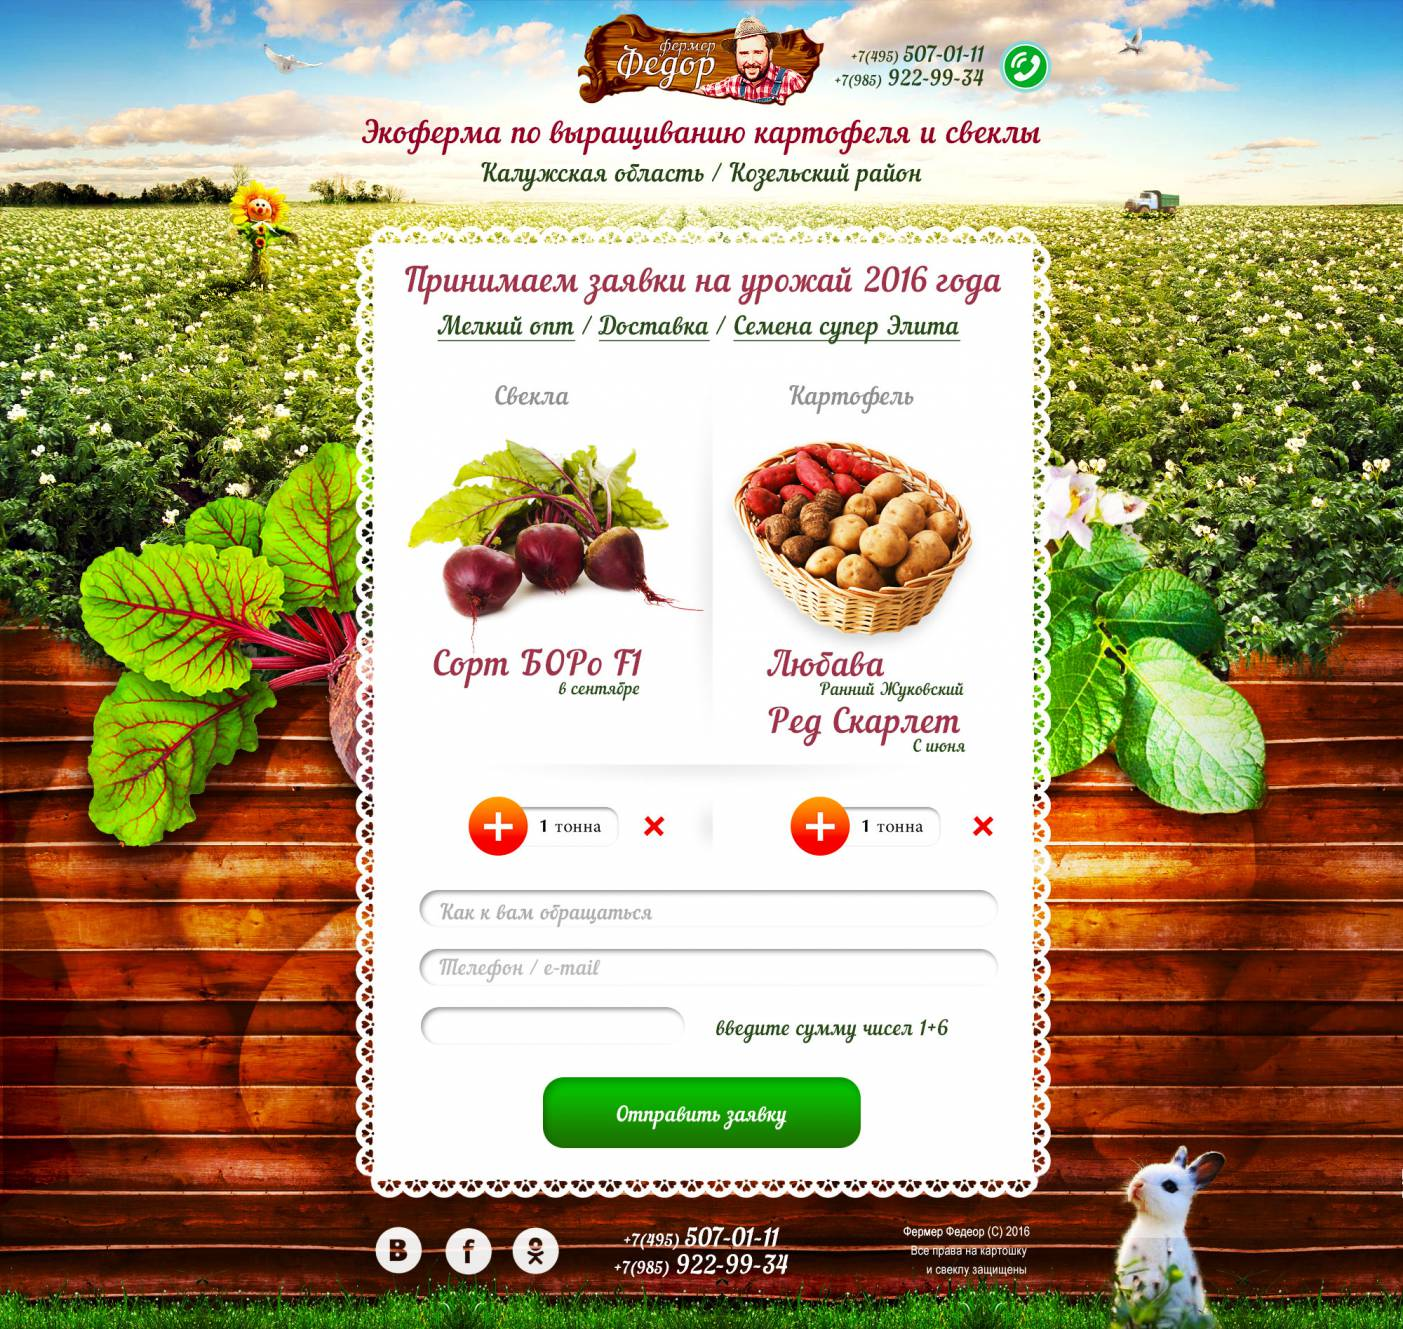 Development of a landing page for an agro-industrial farm